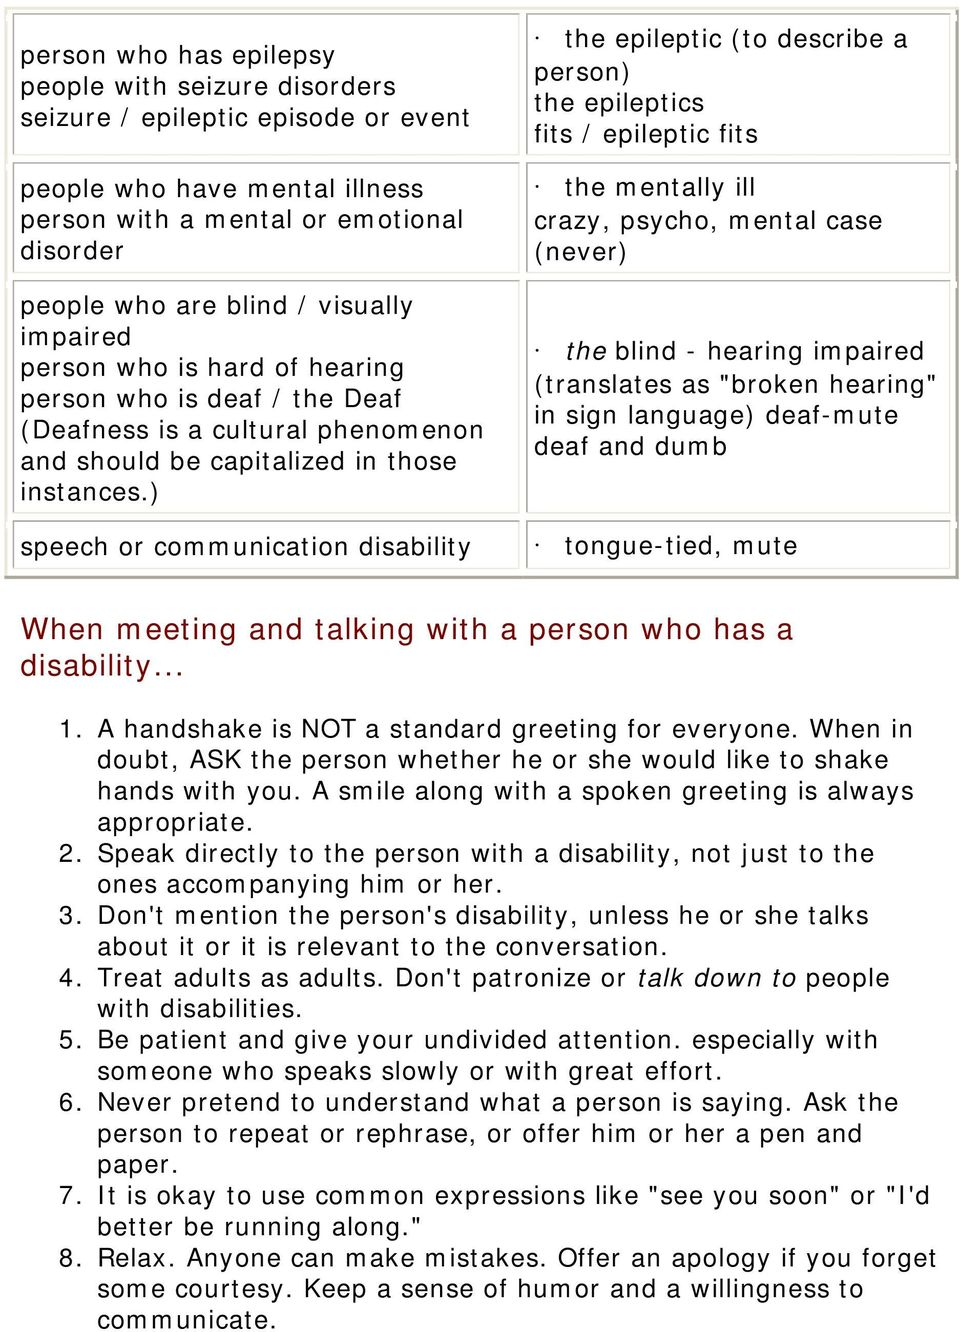 ) speech or communication disability the epileptic (to describe a person) the epileptics fits / epileptic fits the mentally ill crazy, psycho, mental case (never) the blind - hearing impaired